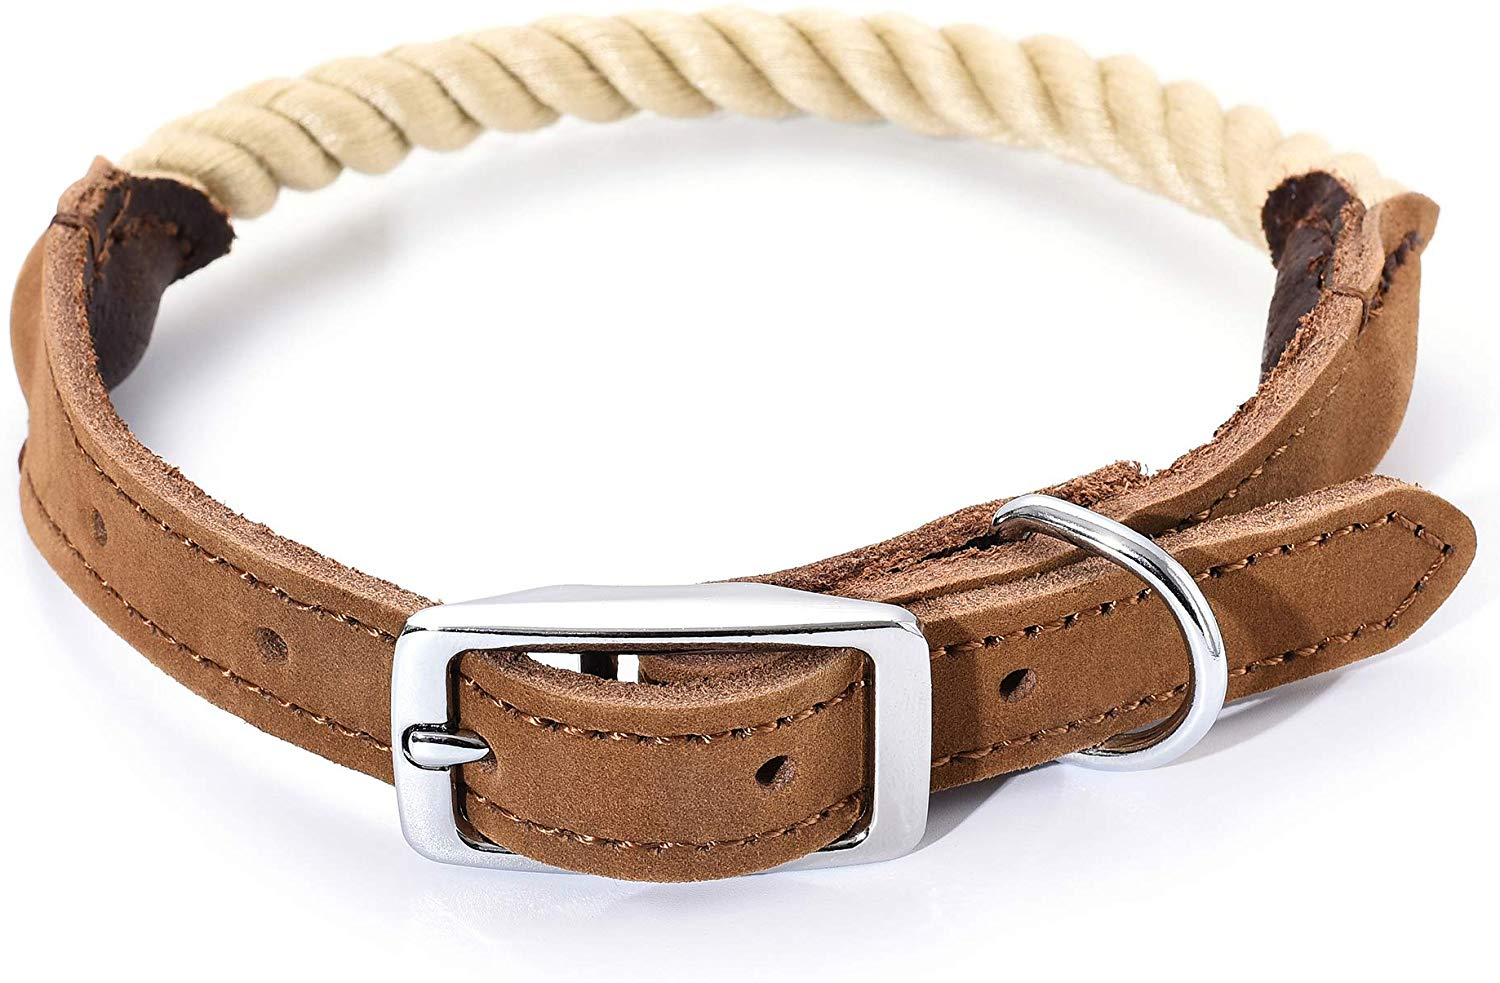 Premium Cotton Rope Leather Dog Collar w/ Stainless Steel Pin Buckle Ring